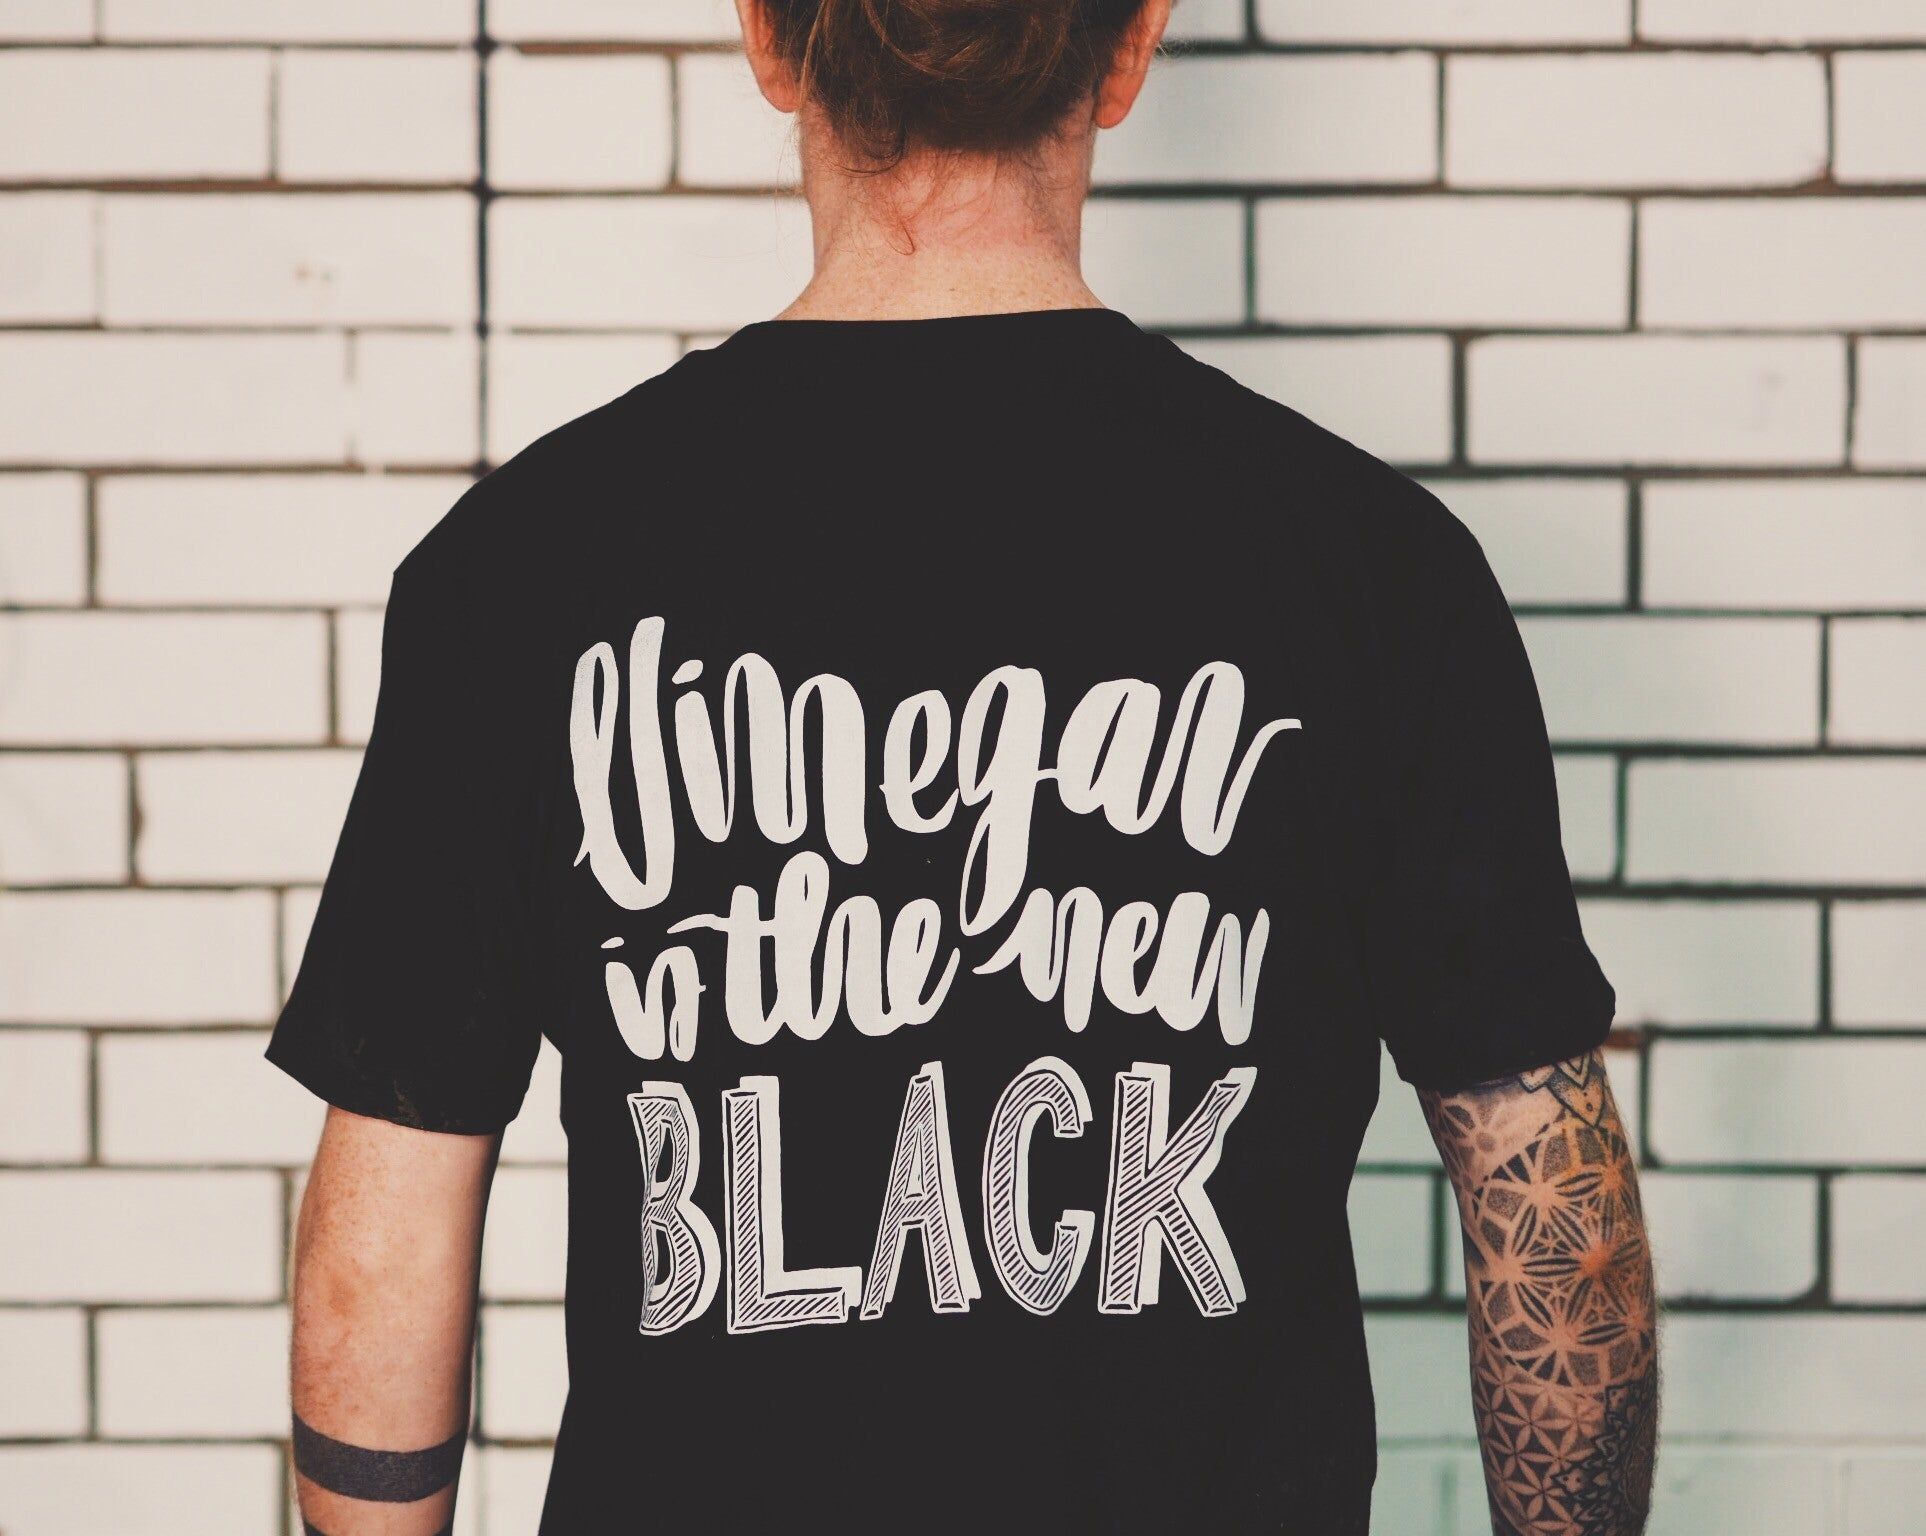 Vinegar is the new black